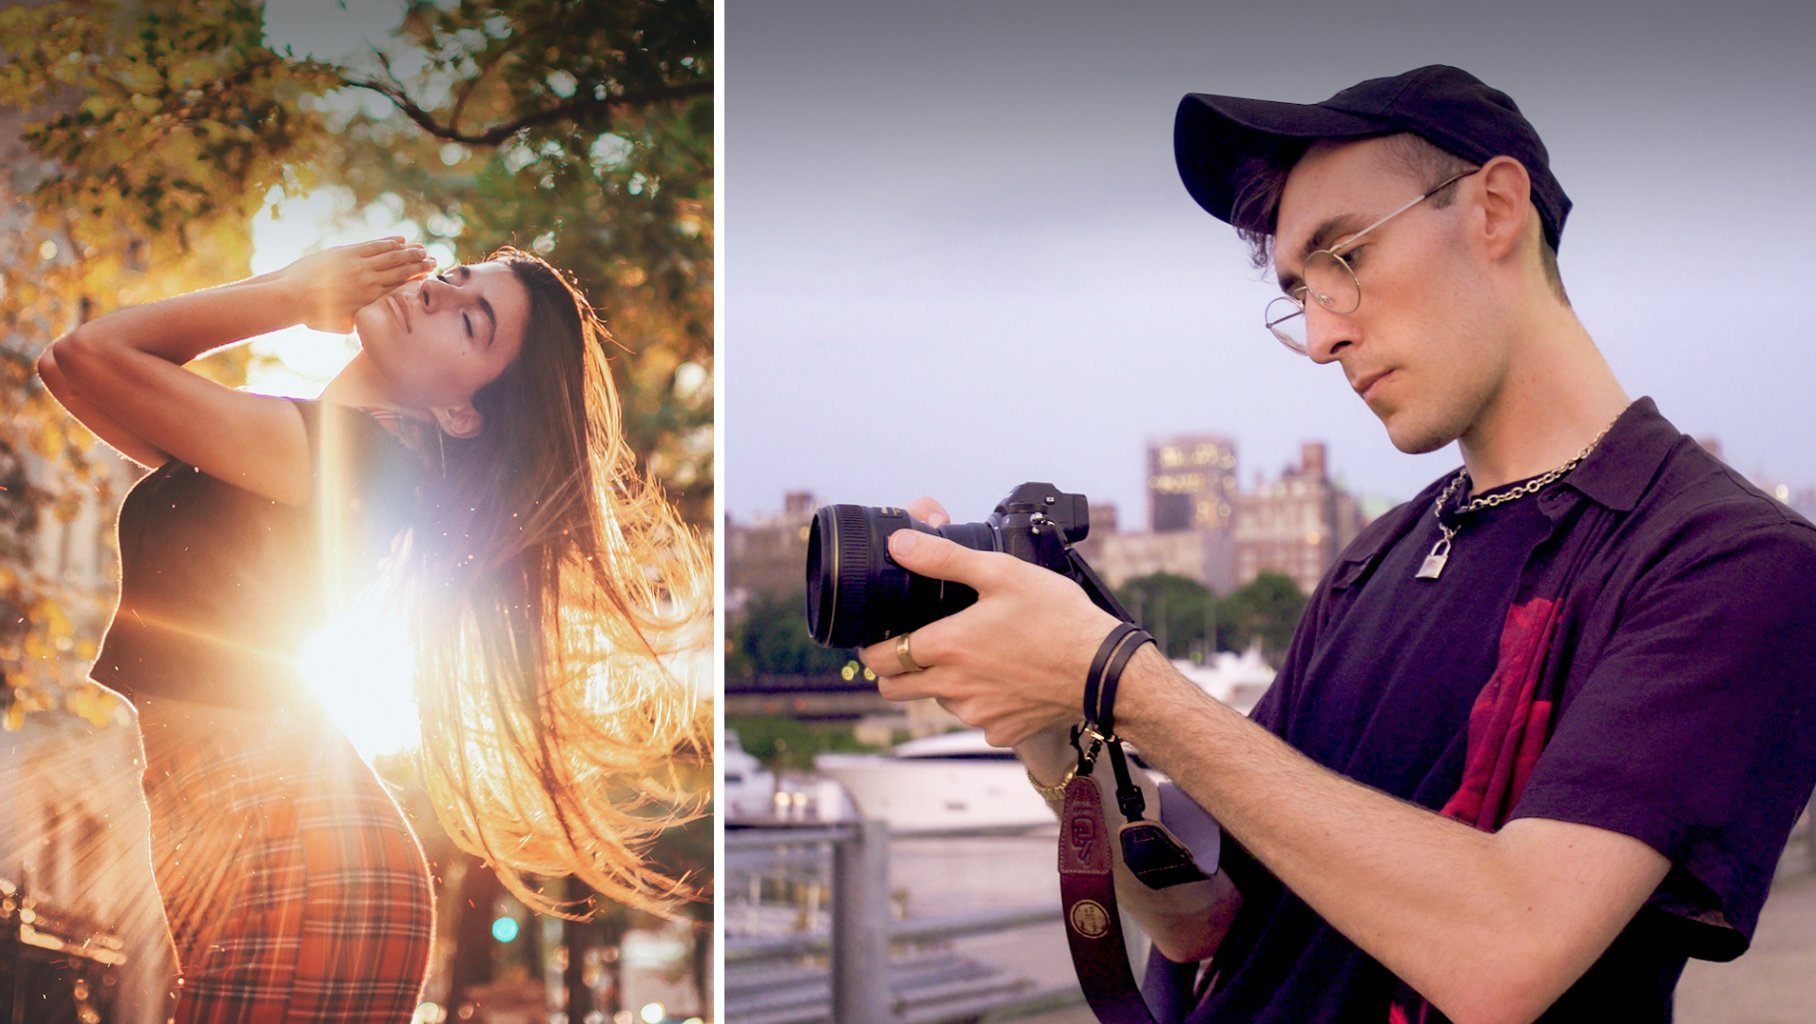 Explore Online Photography Courses Taught By Experts